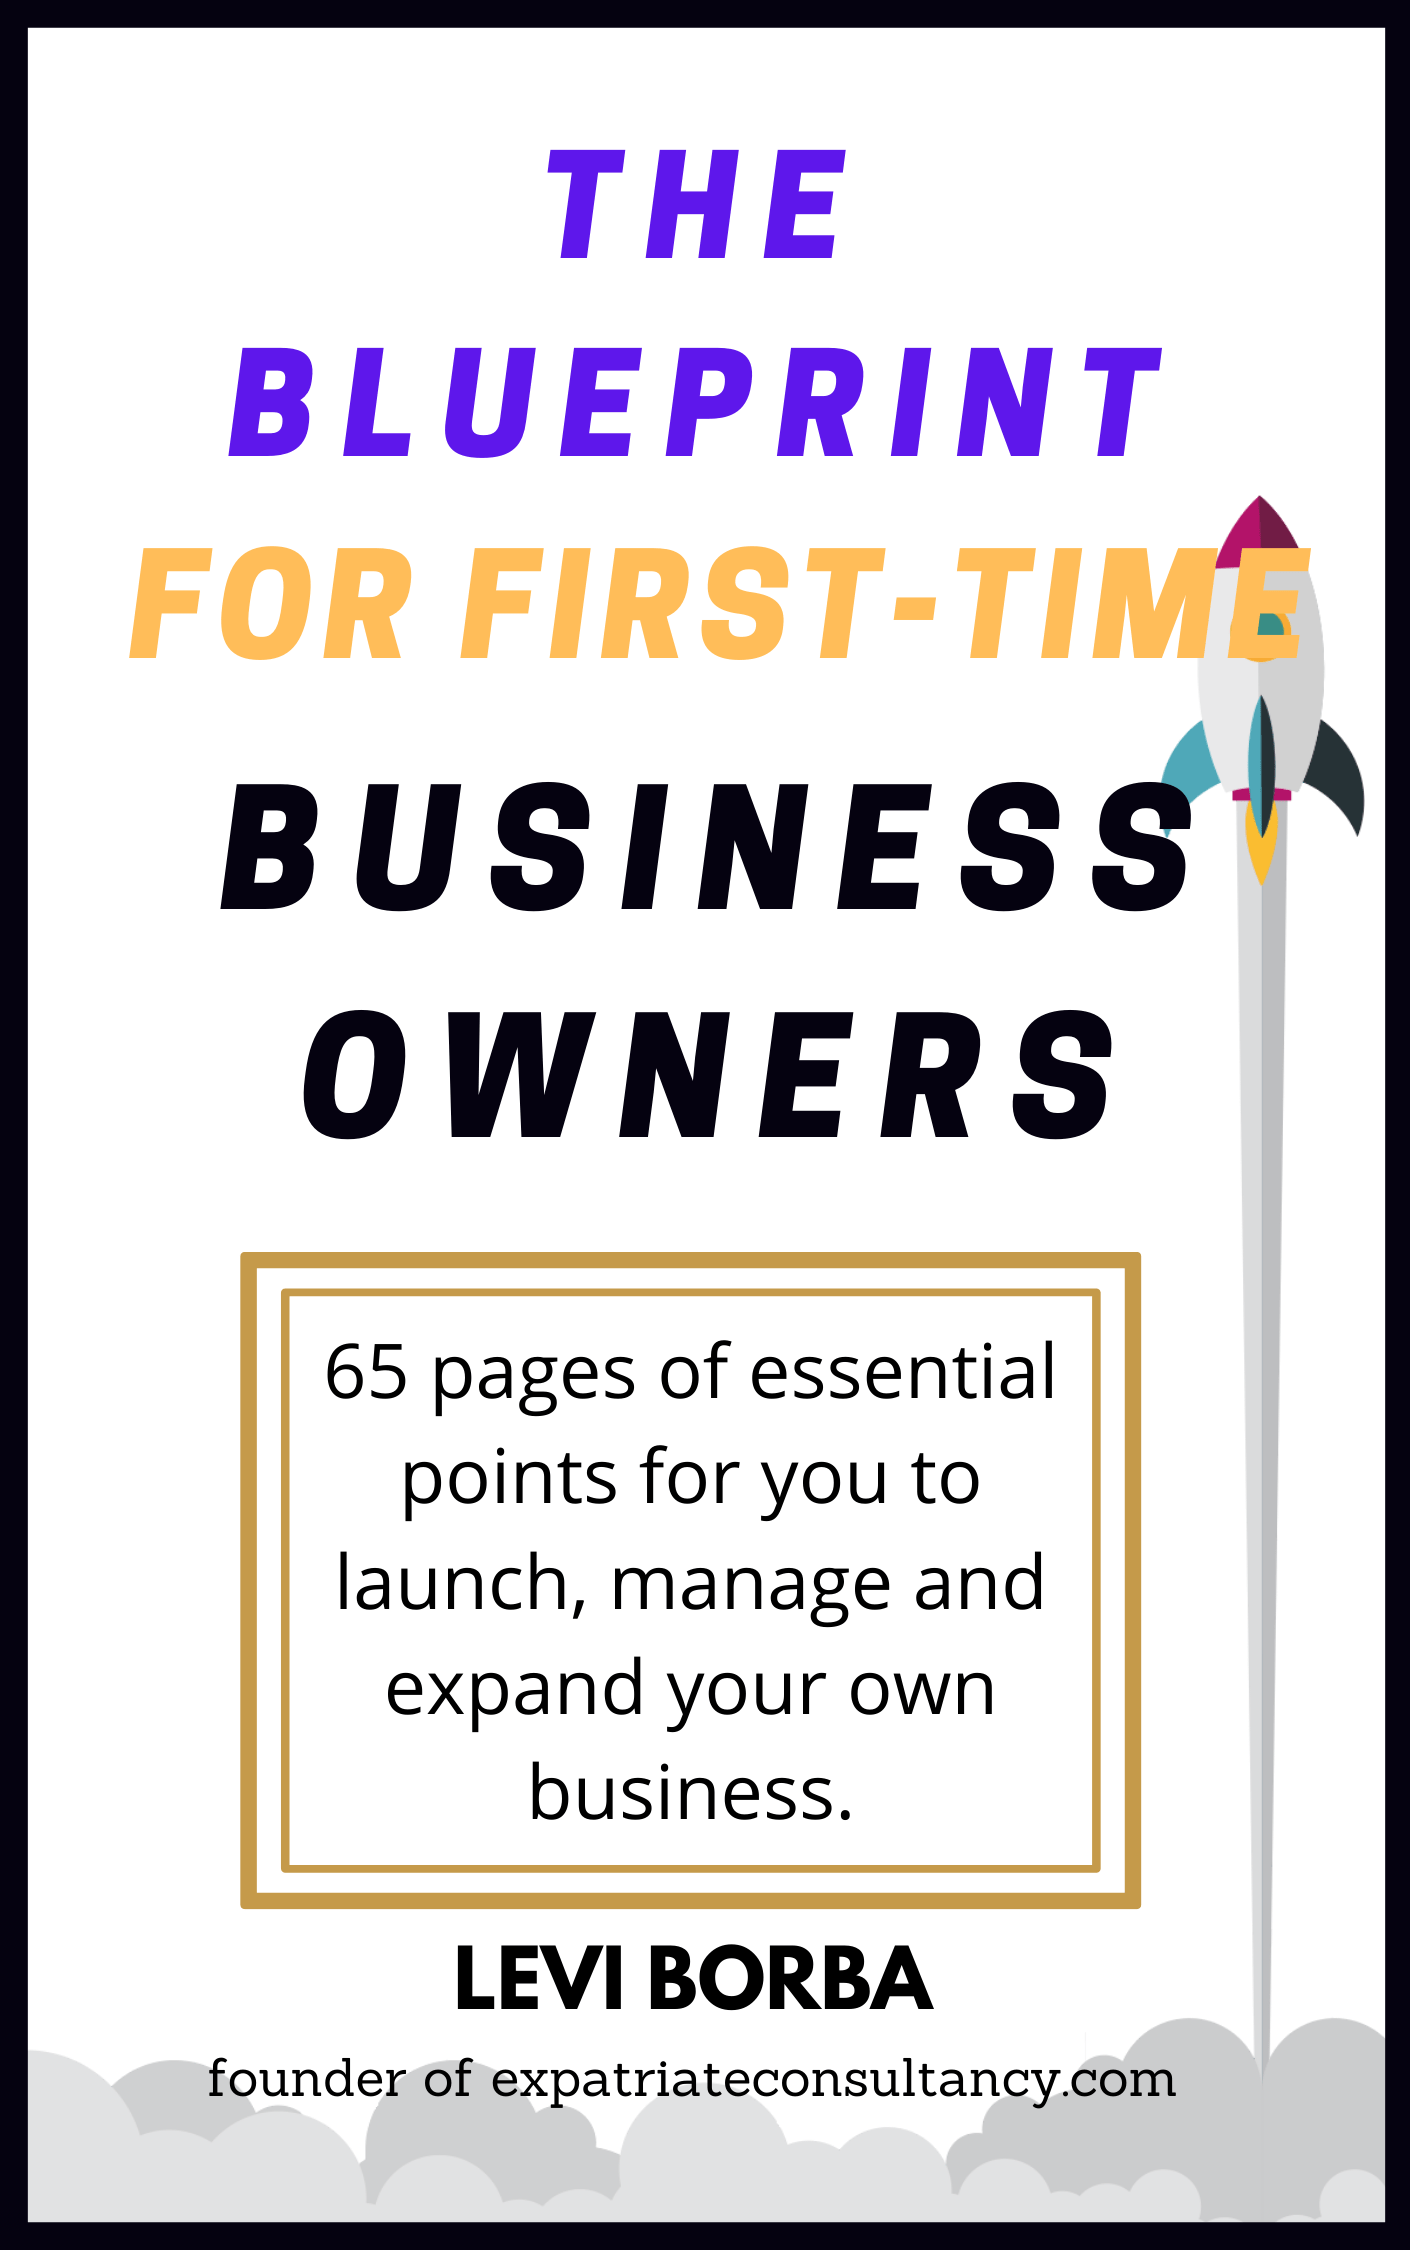 Blueprint for first-time business owners